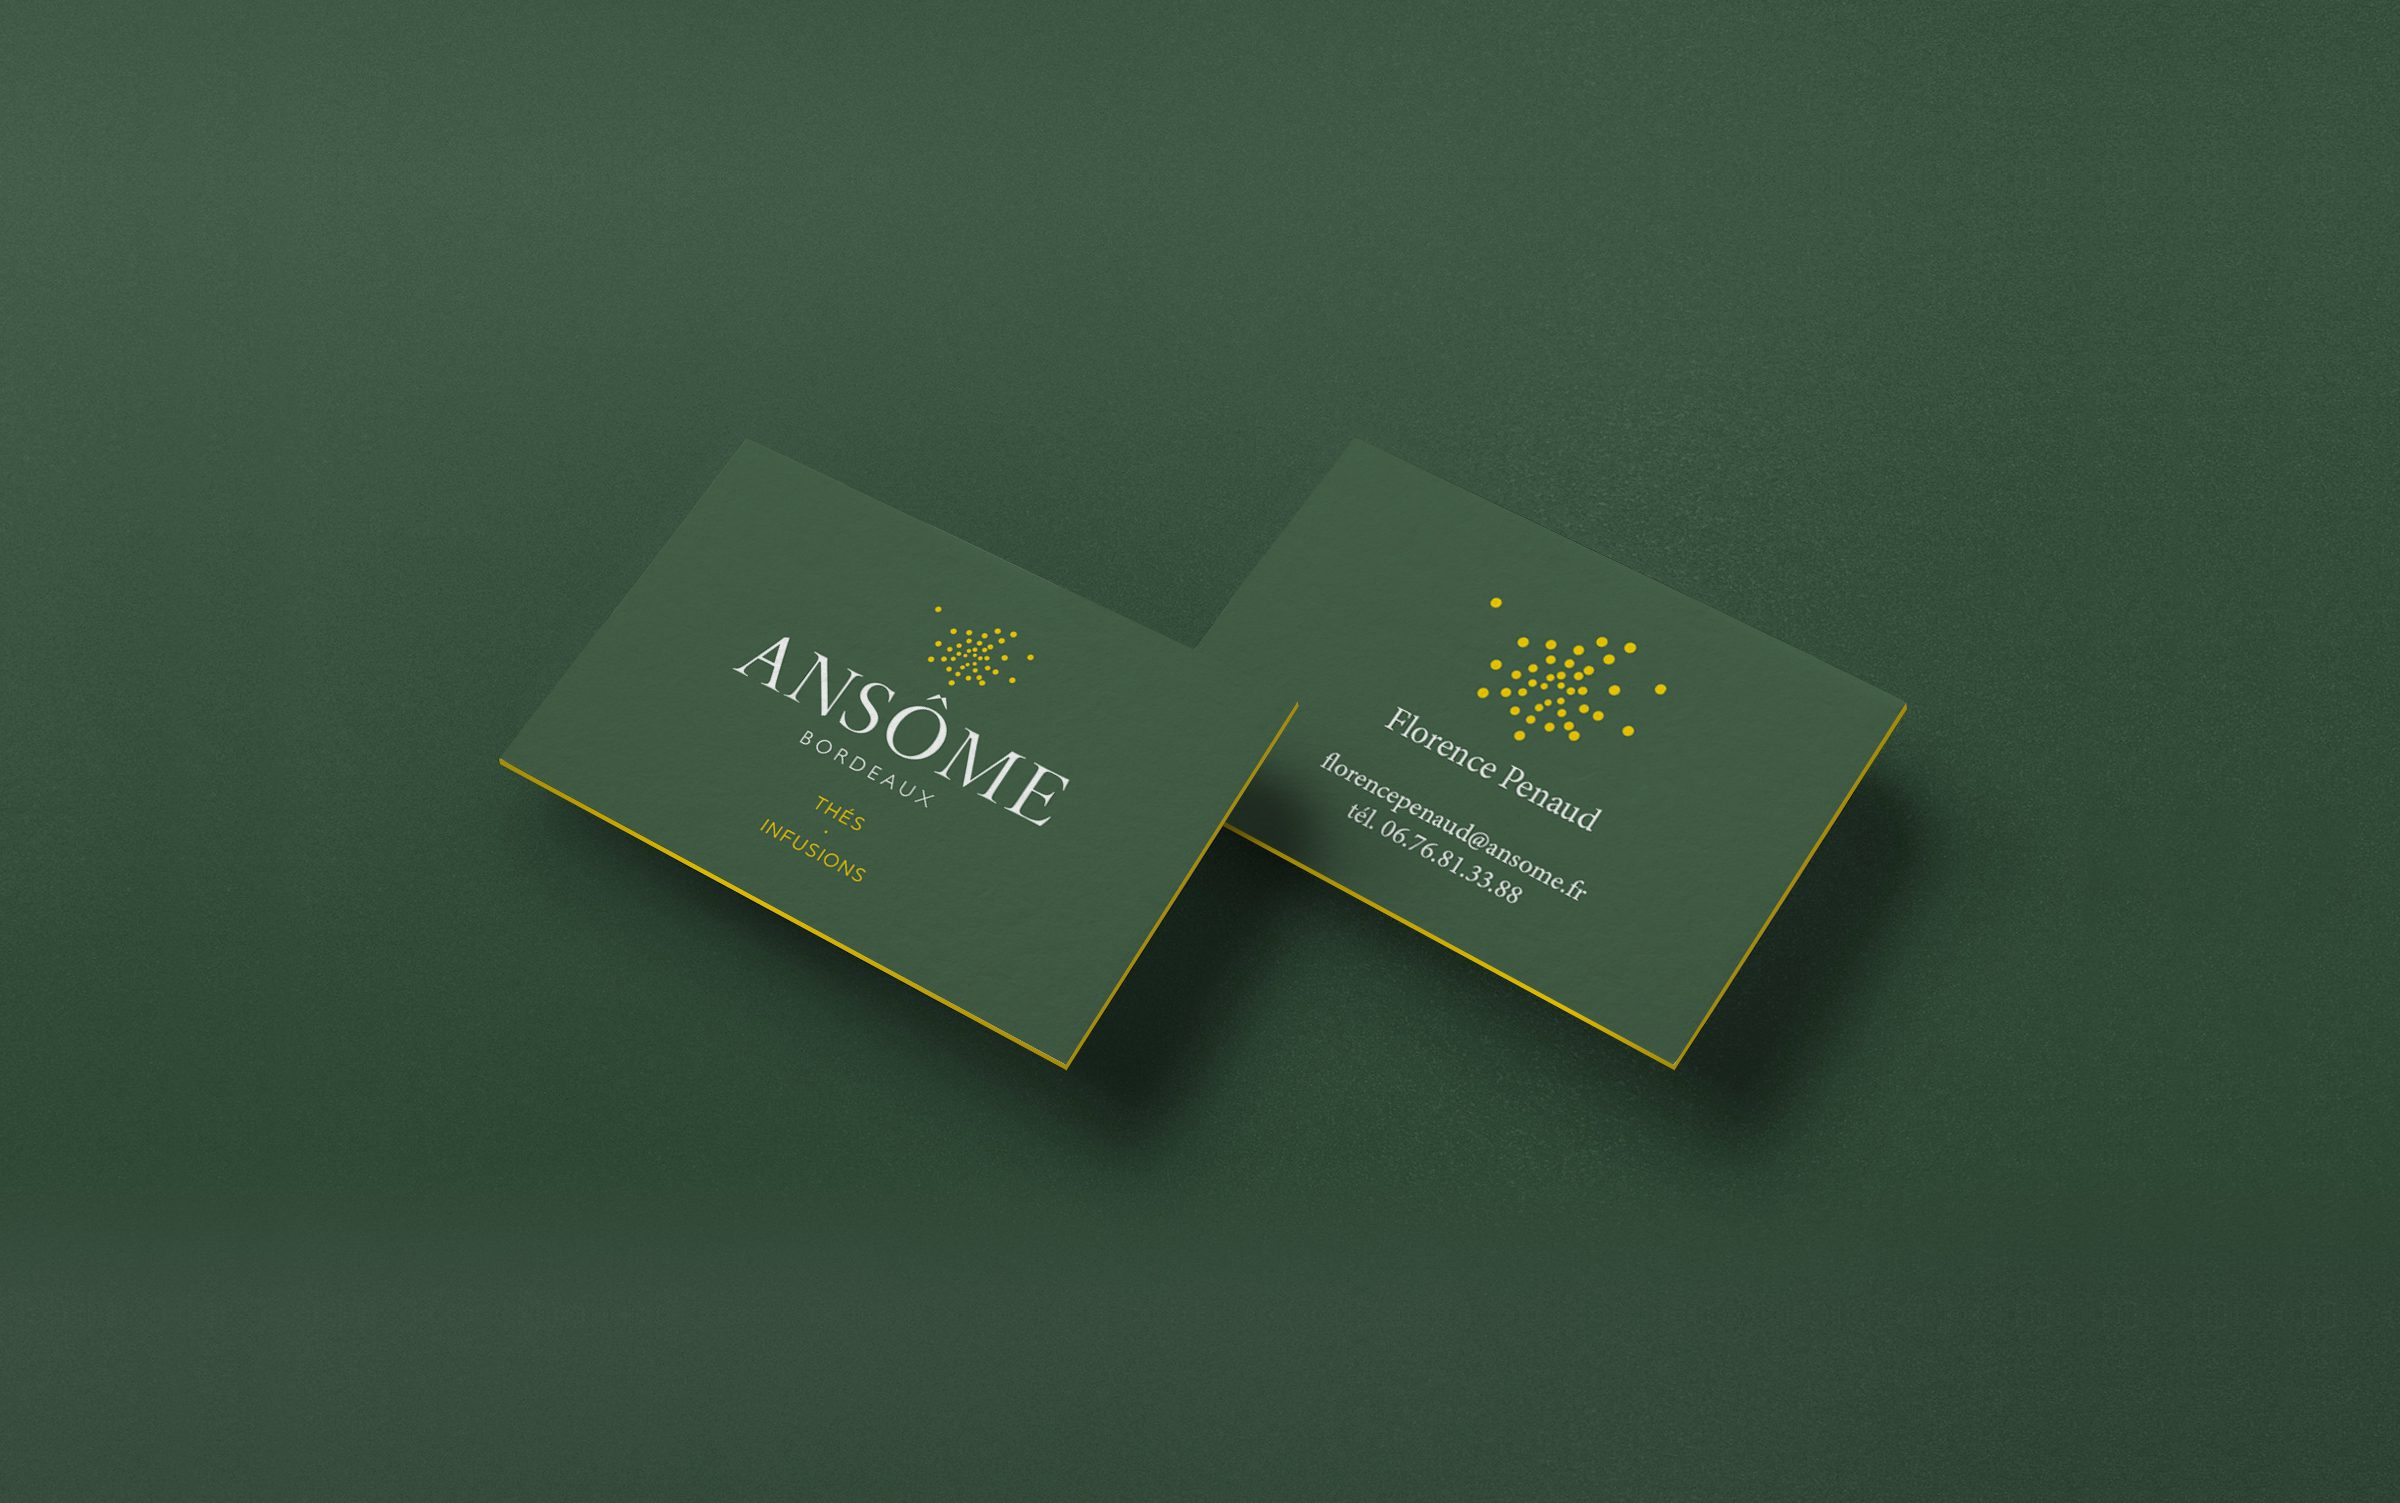 Ansome03